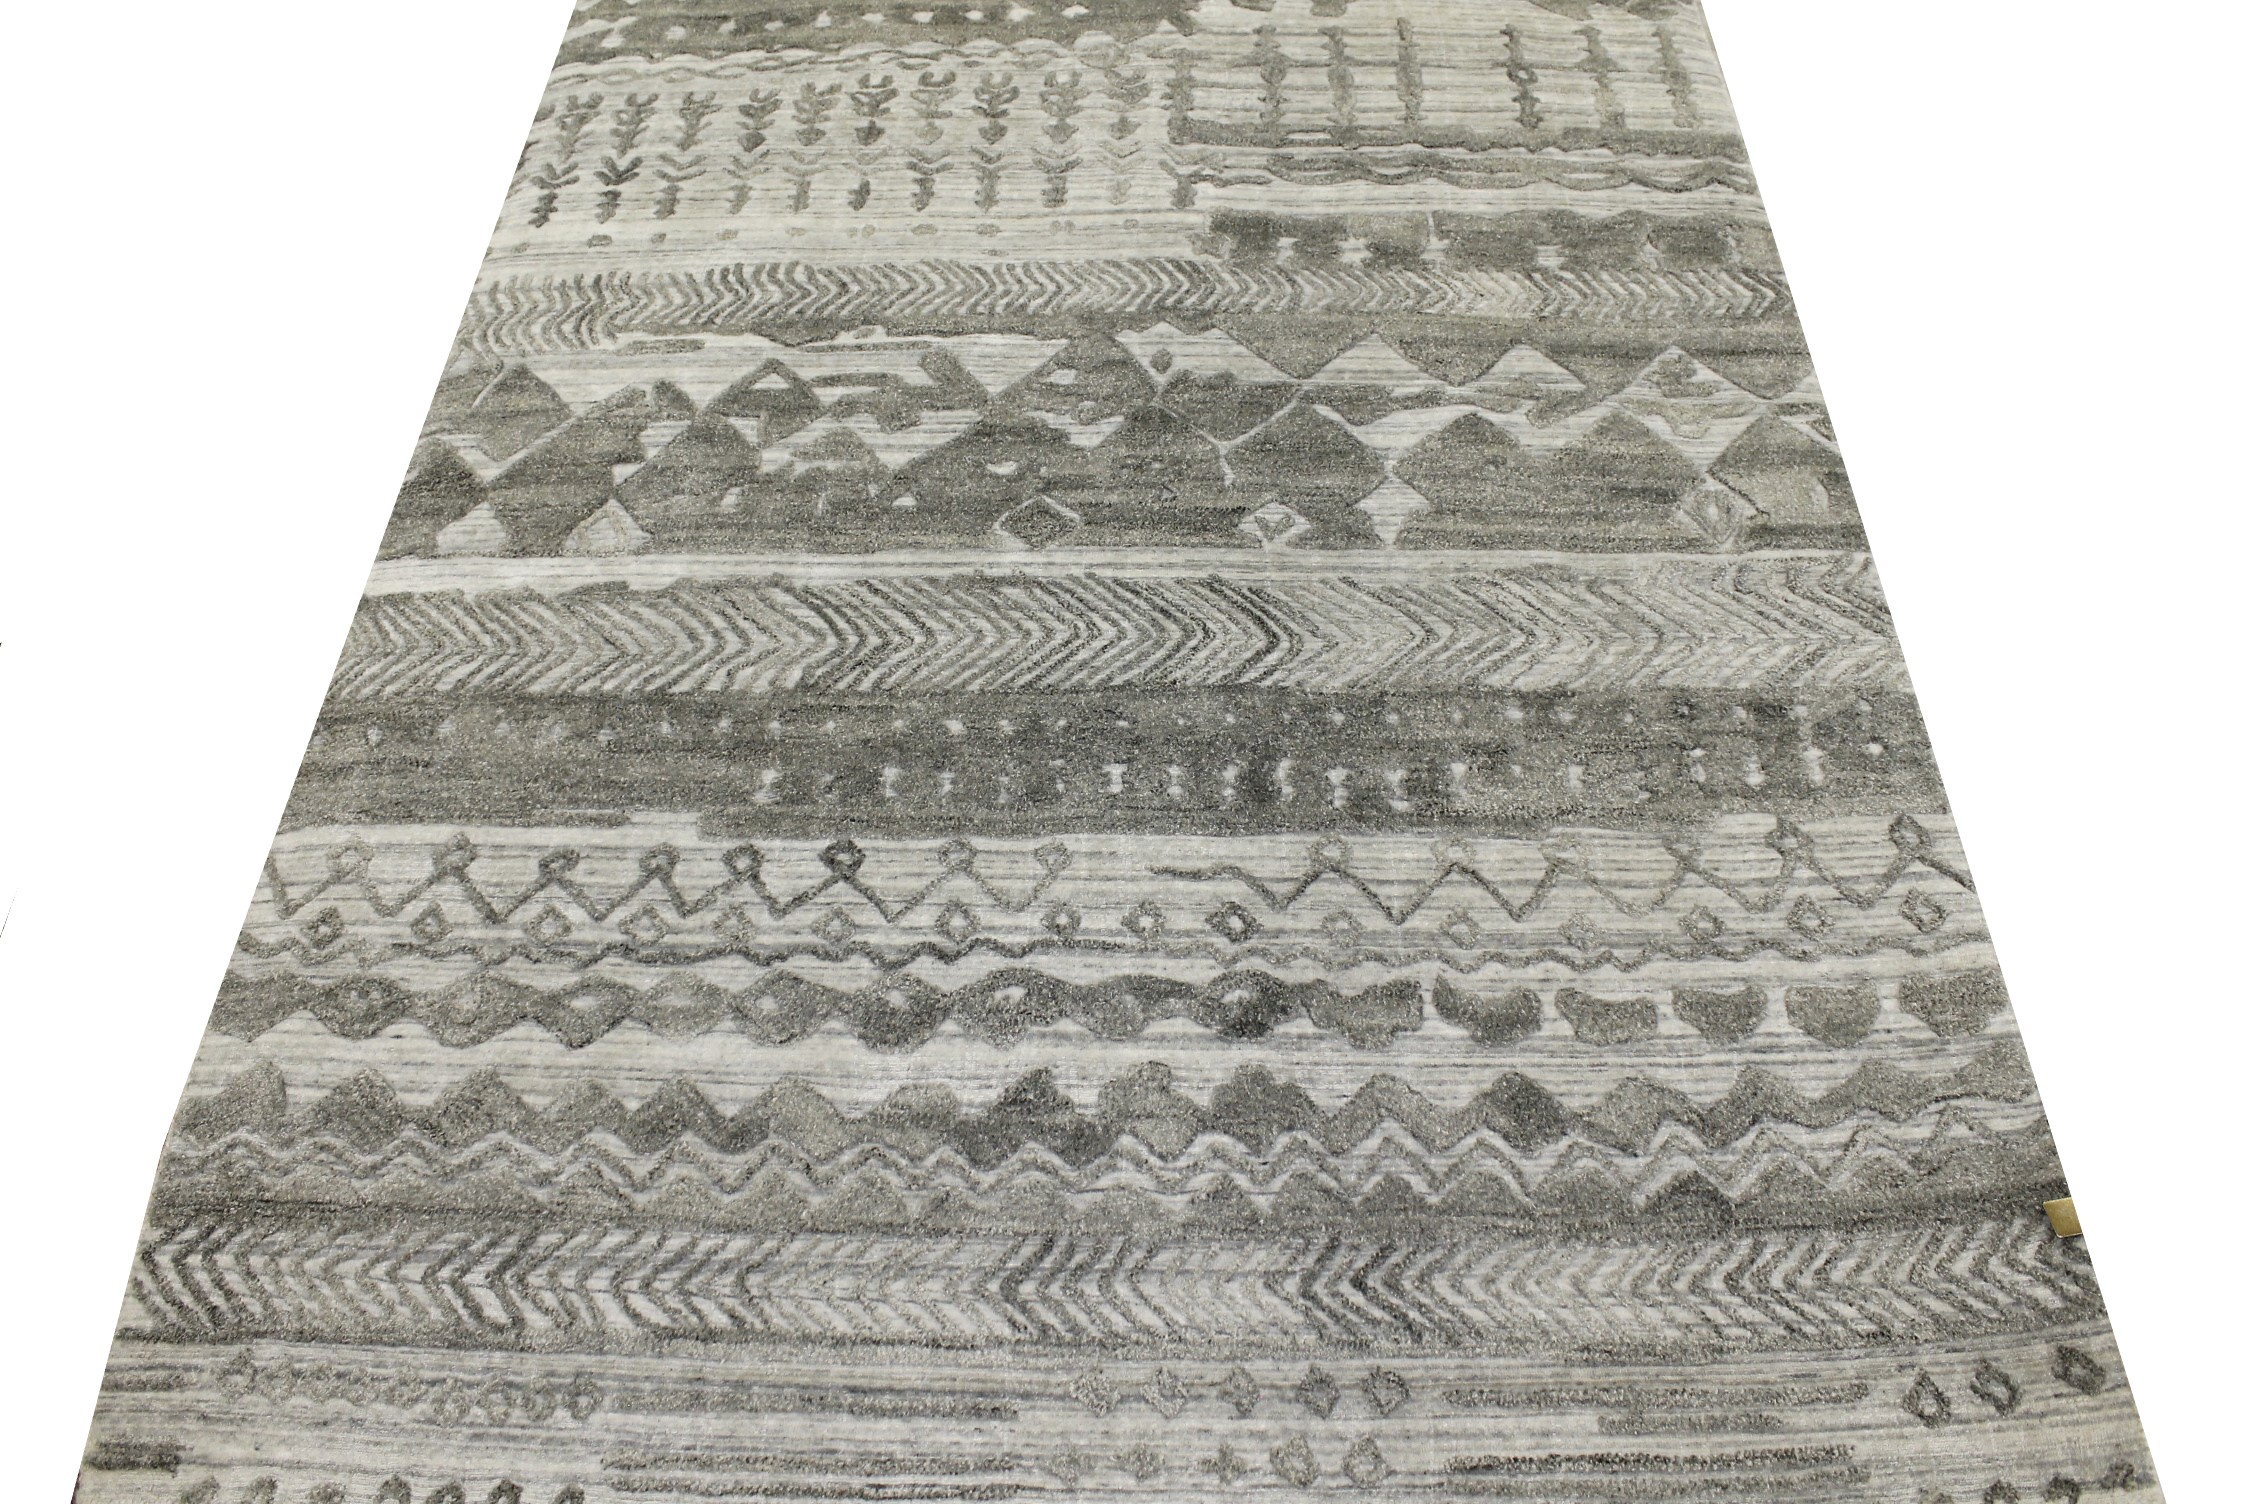 5x7/8 Contemporary Hand Knotted Wool Area Rug - MR022279